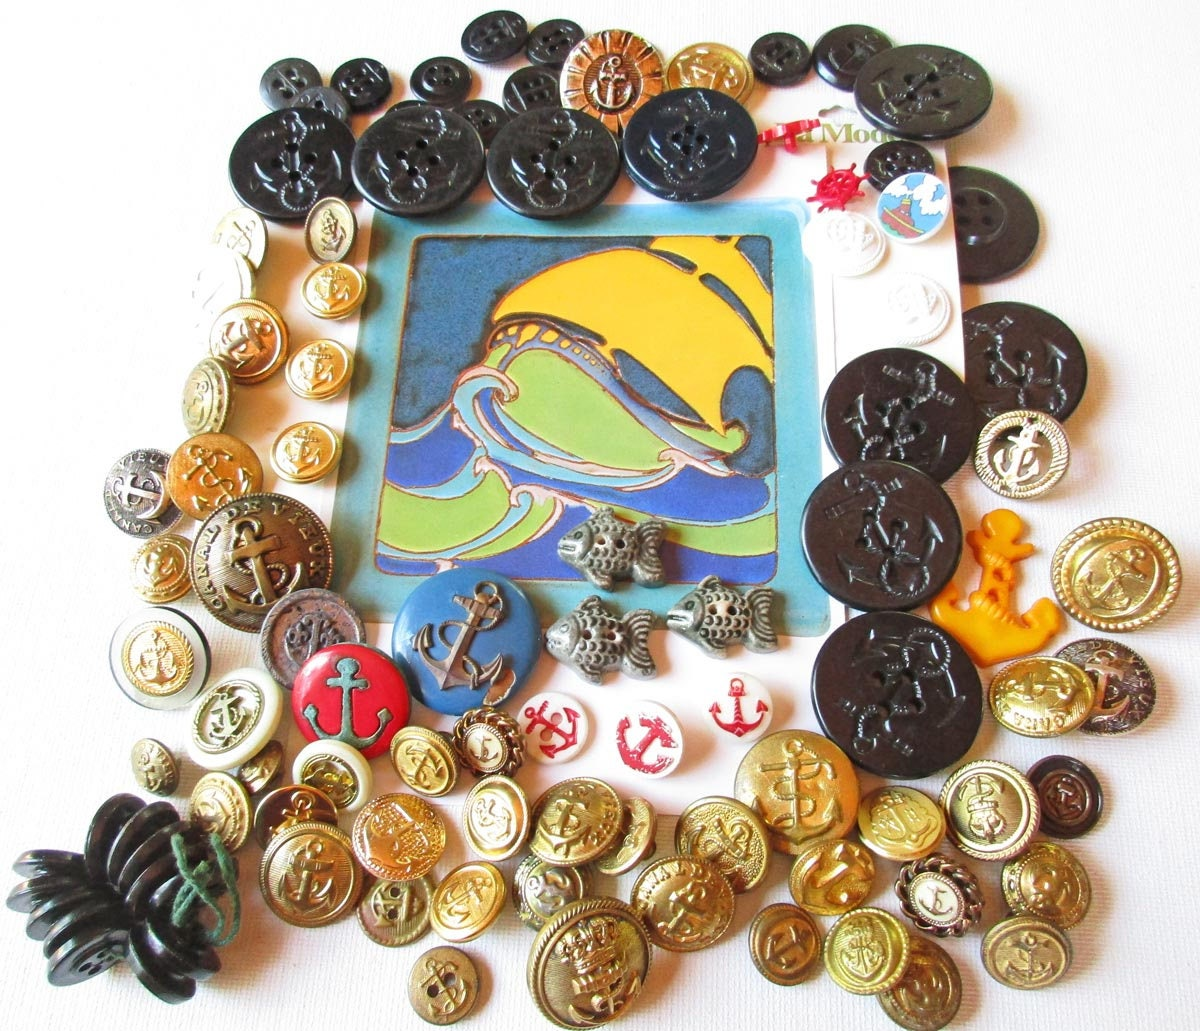 Bulk buttons for crafts - Sold By Crayongardens